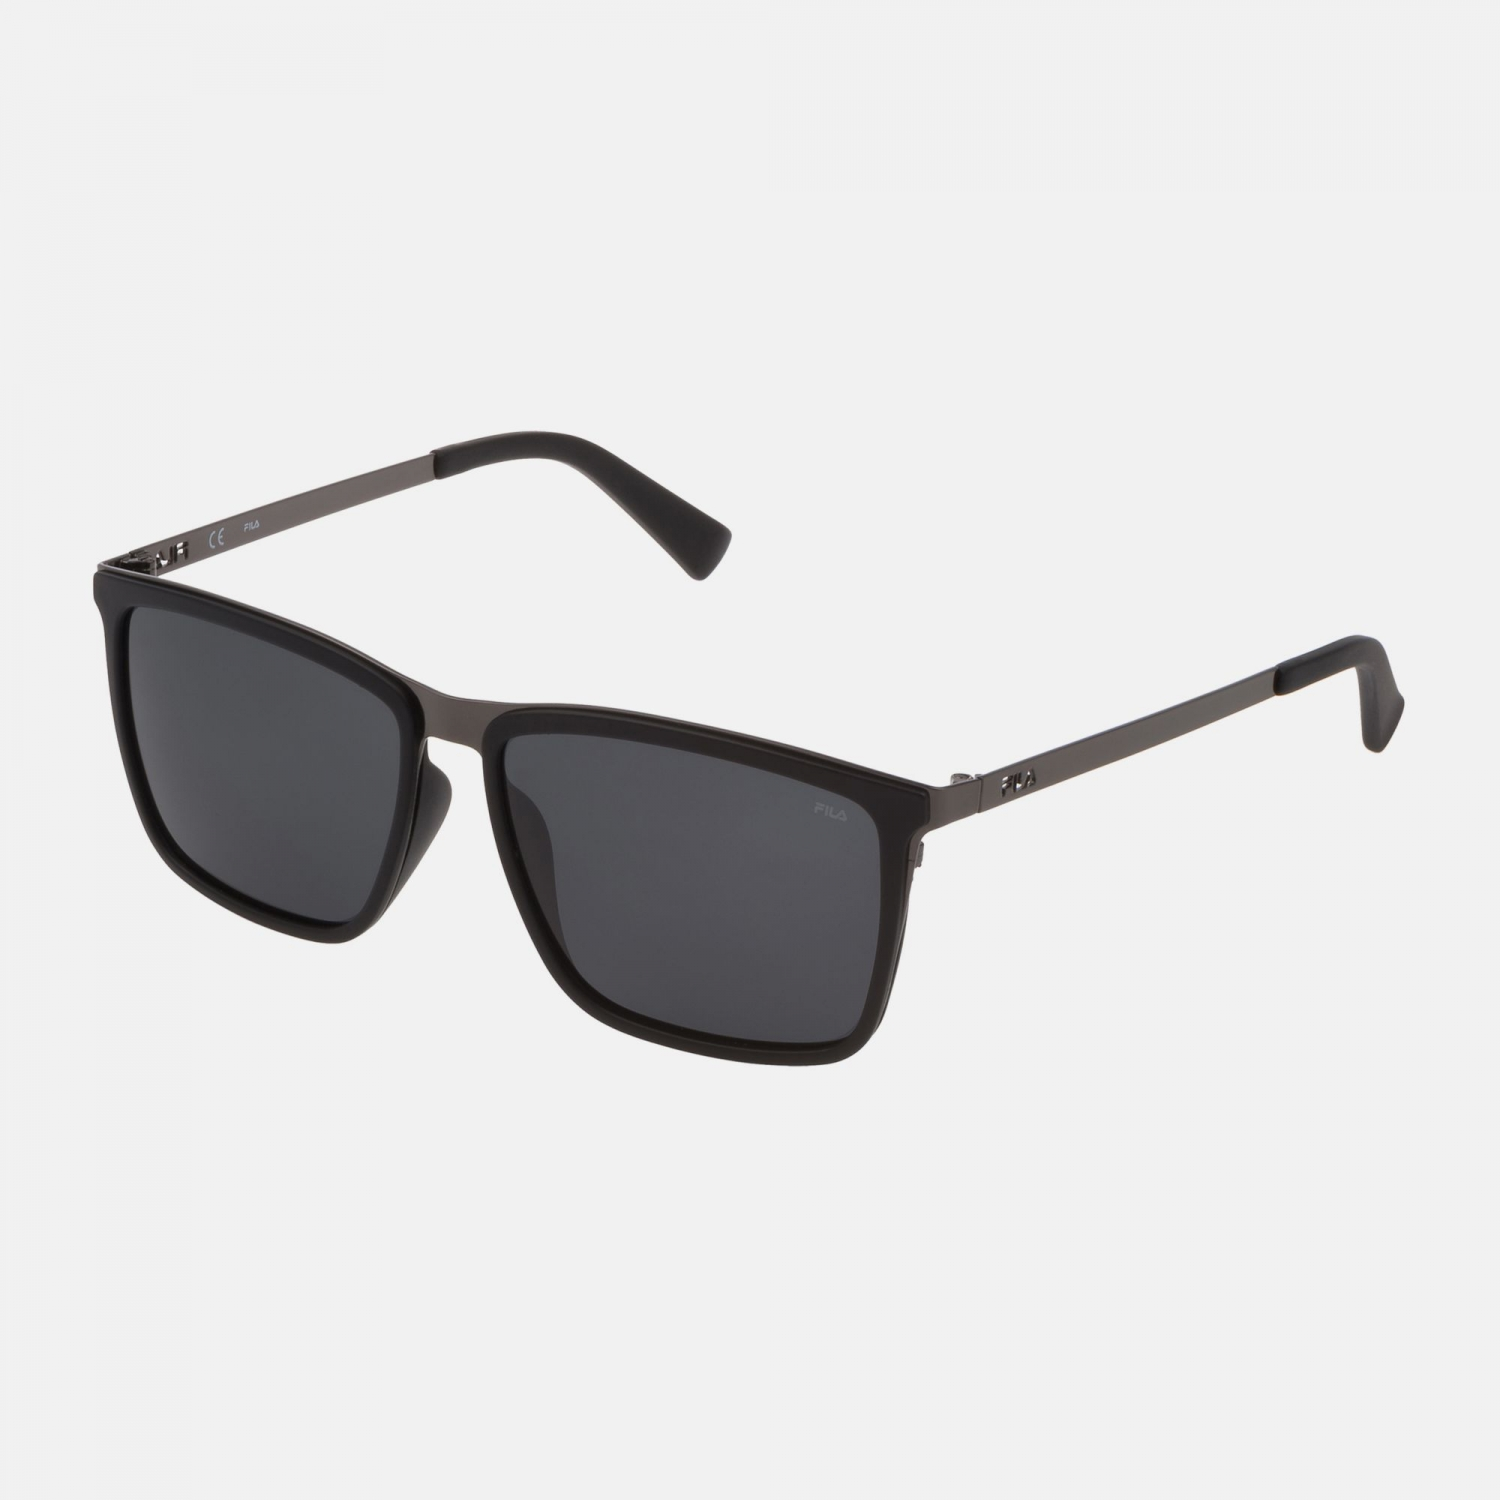 Fila Sunglasses Square 568P Bild 1